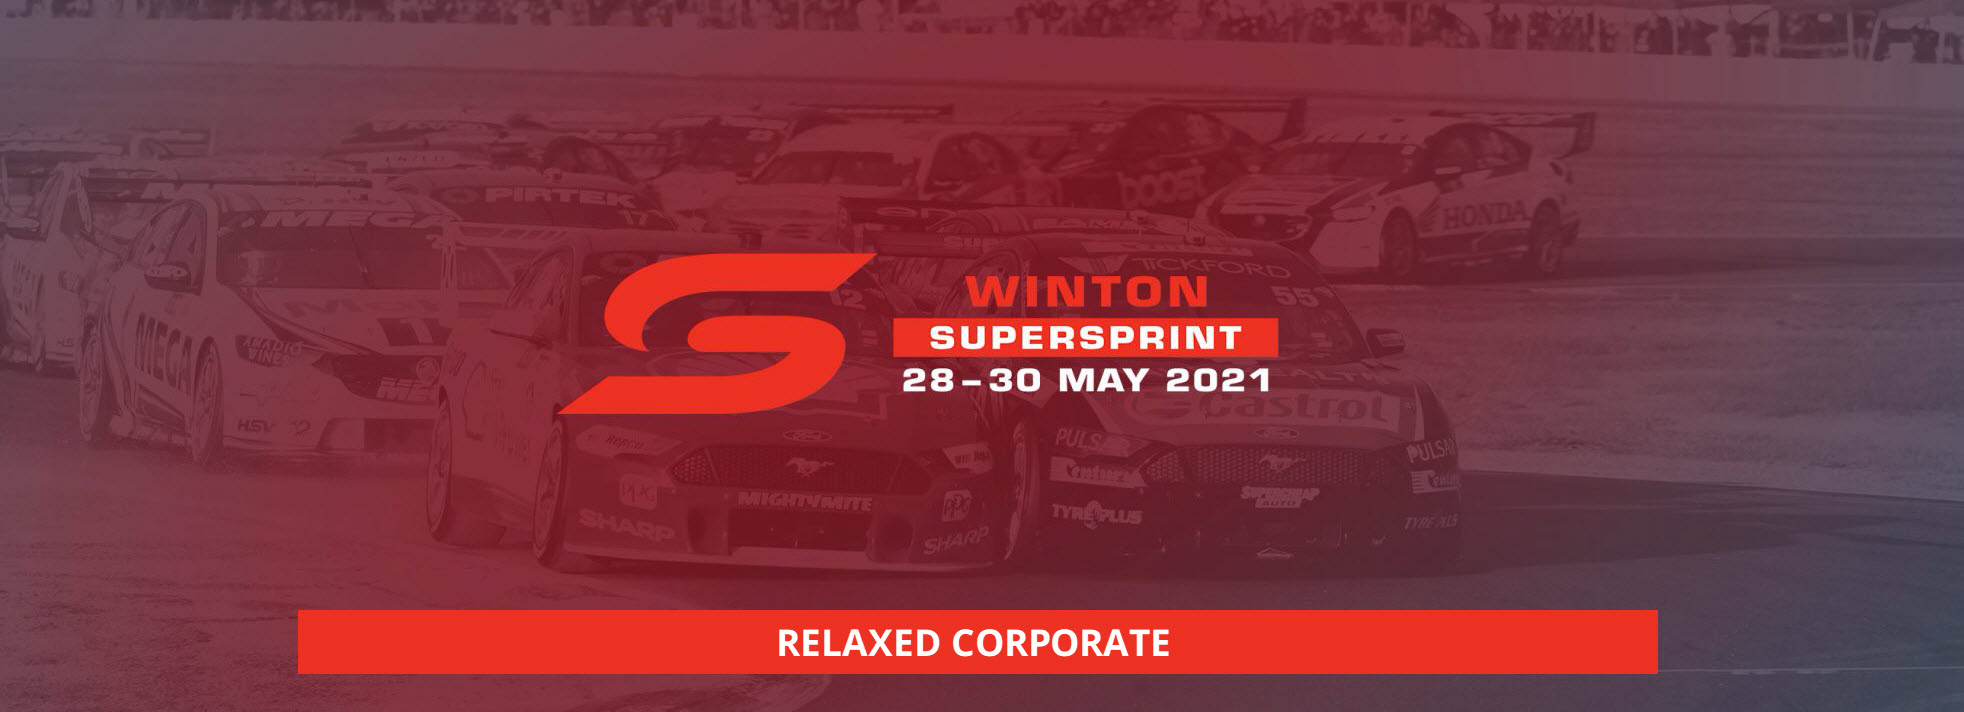 Winton SuperSprint 2021 | Relaxed Corporate